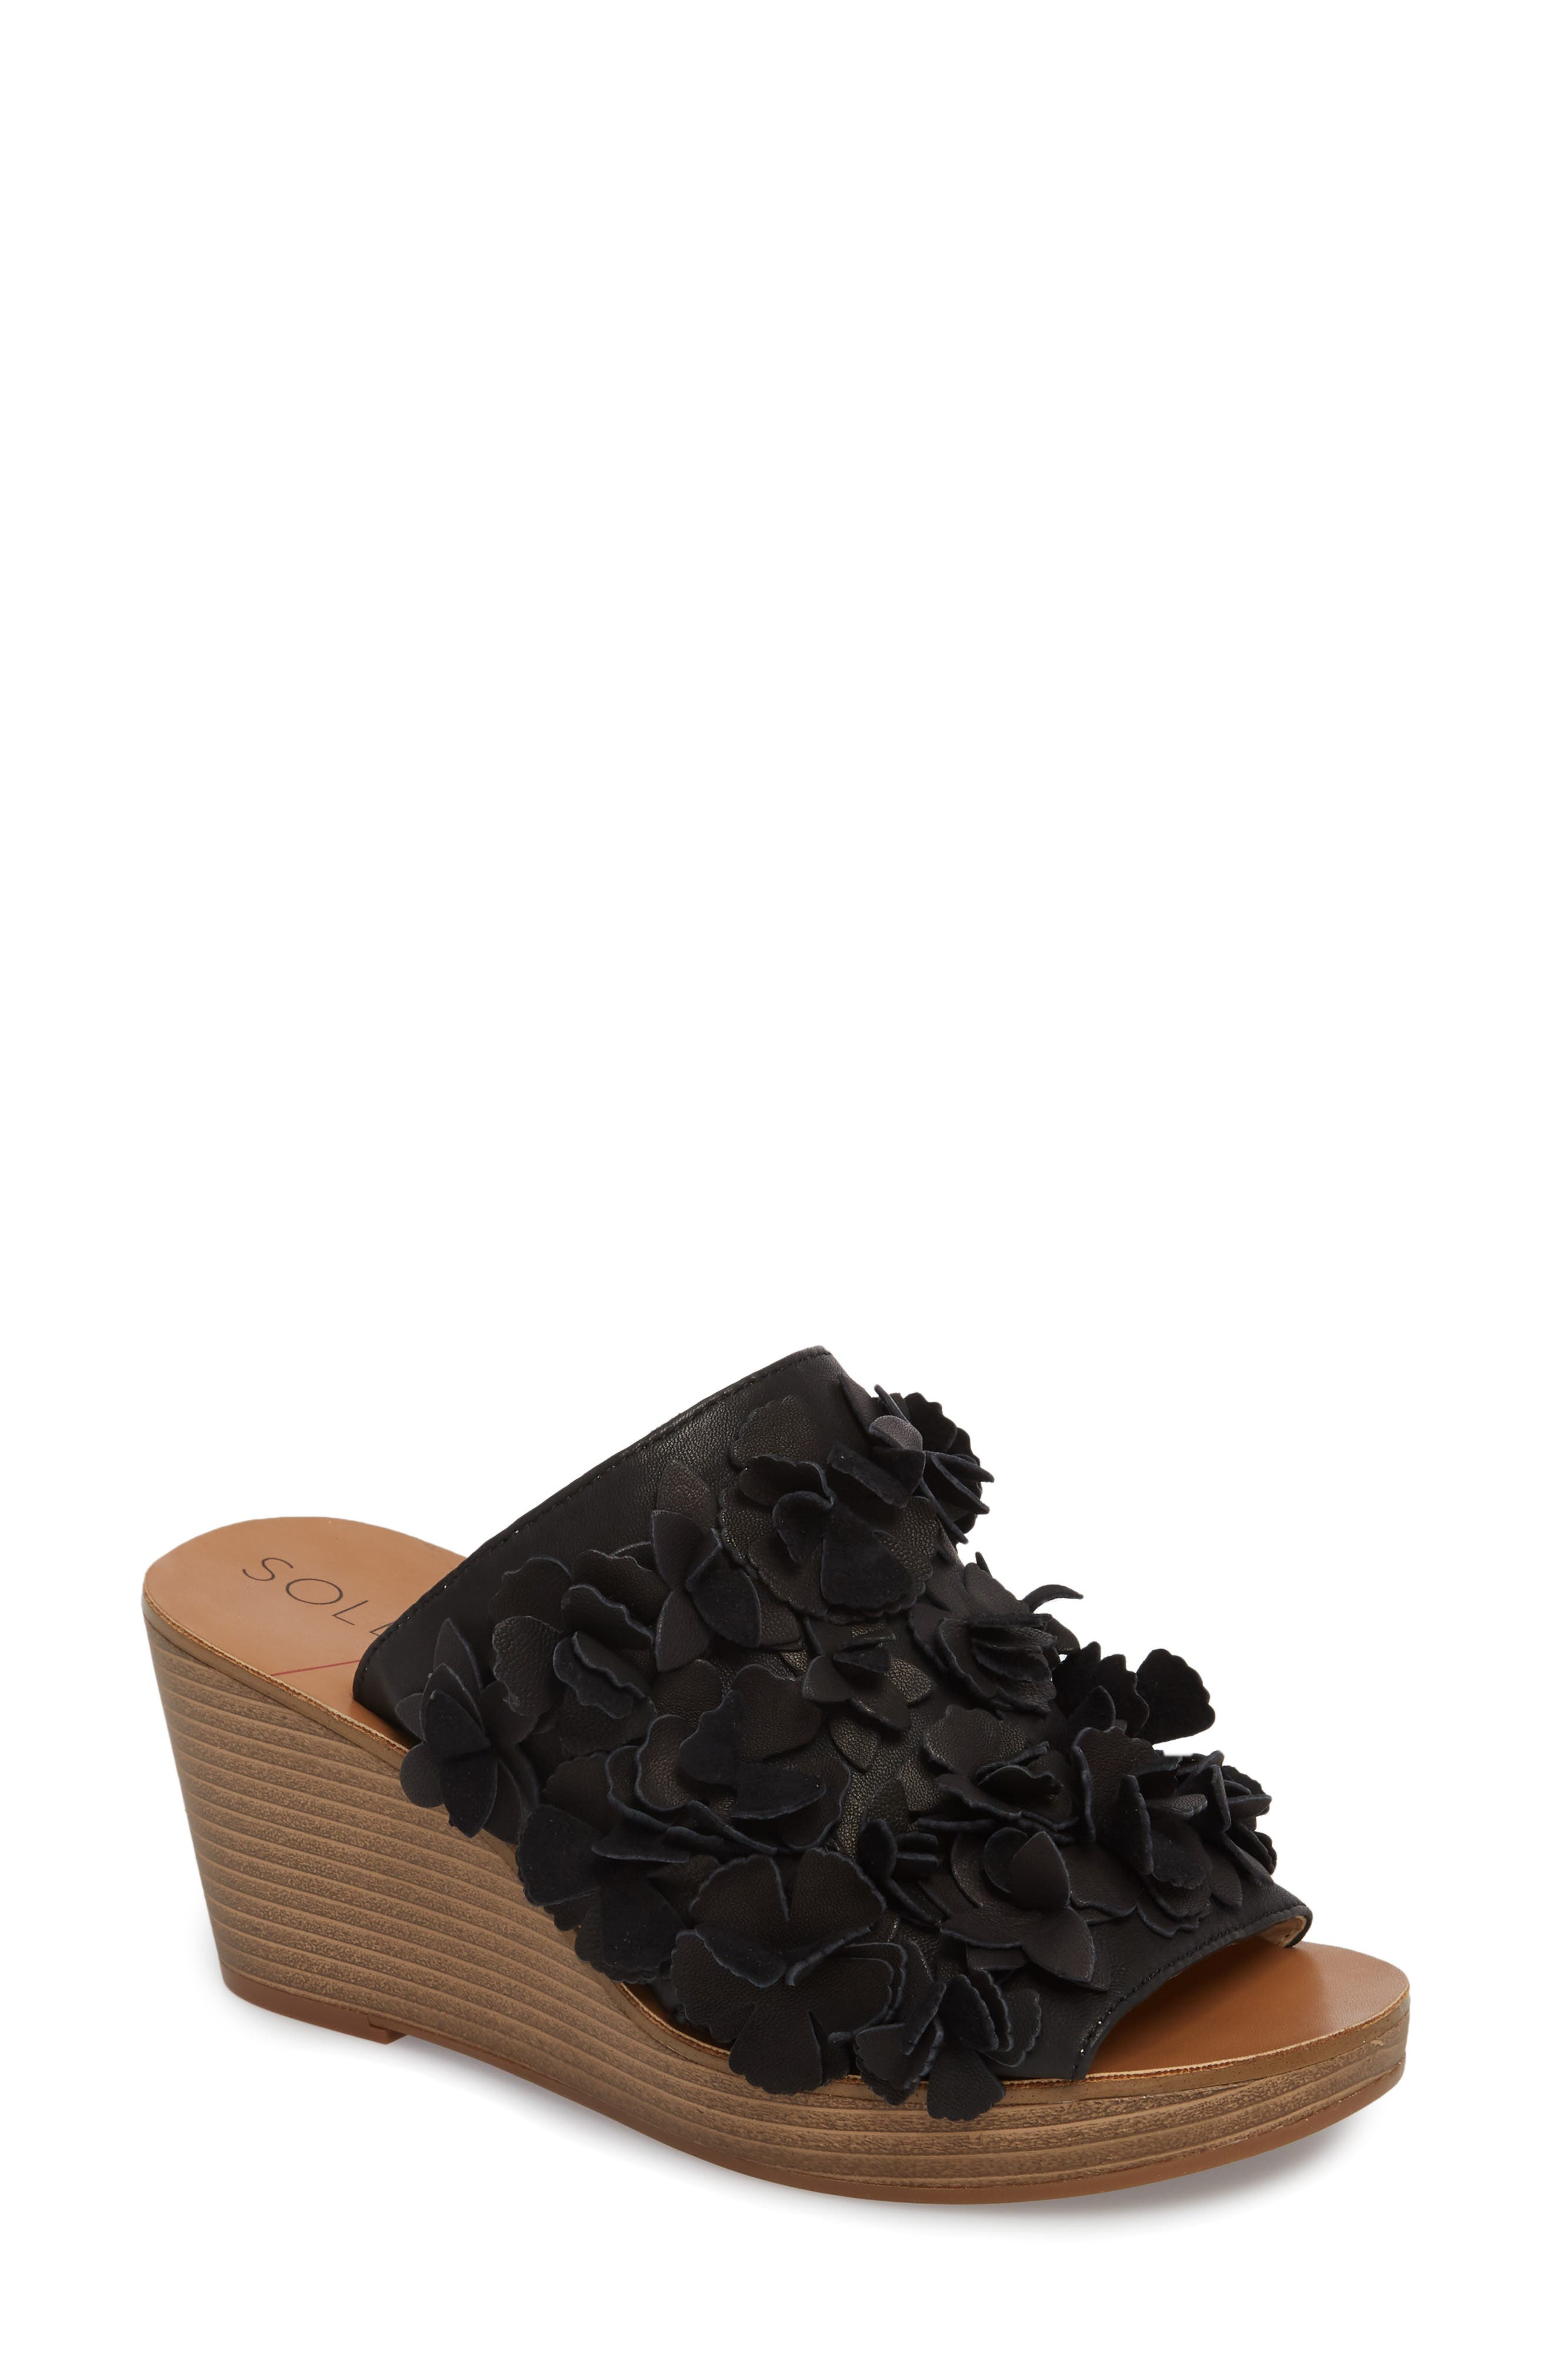 Poppie Wedge Sandal,                             Main thumbnail 1, color,                             BLACK